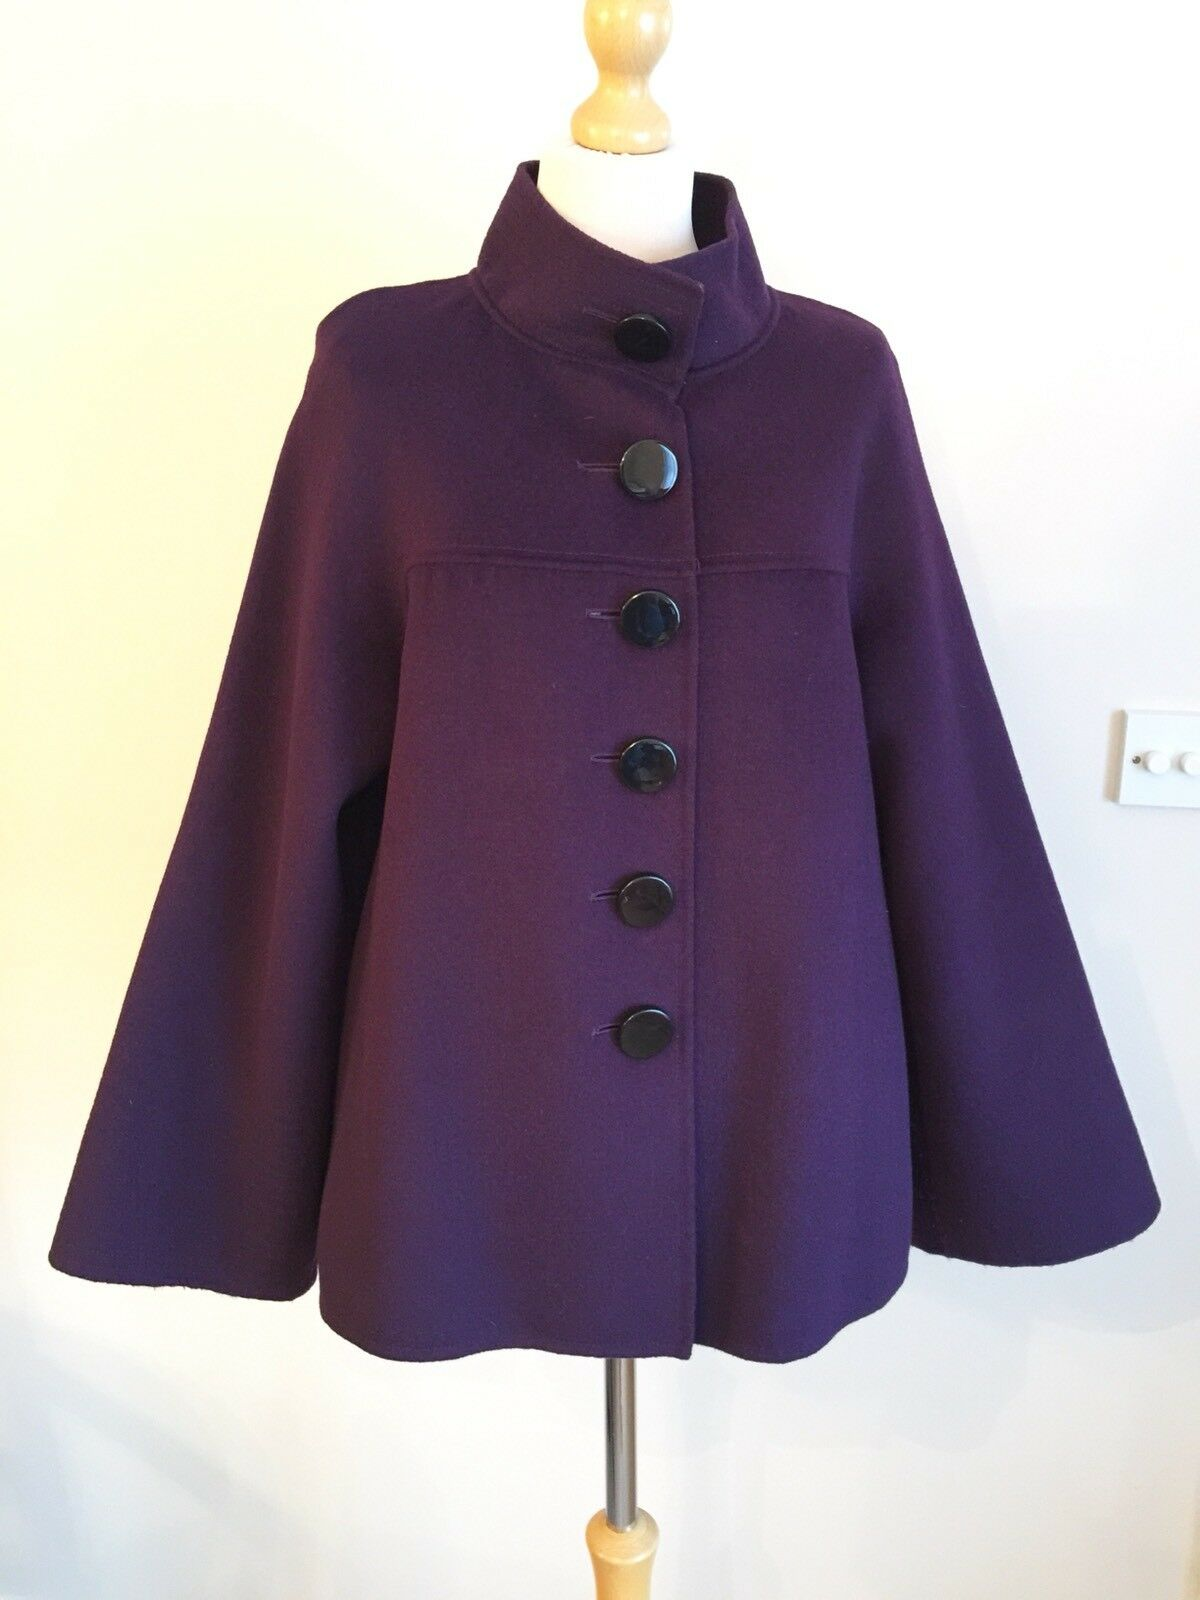 Jaeger purple Purple Angora Cashmere And Wool Blend Coat Size 14